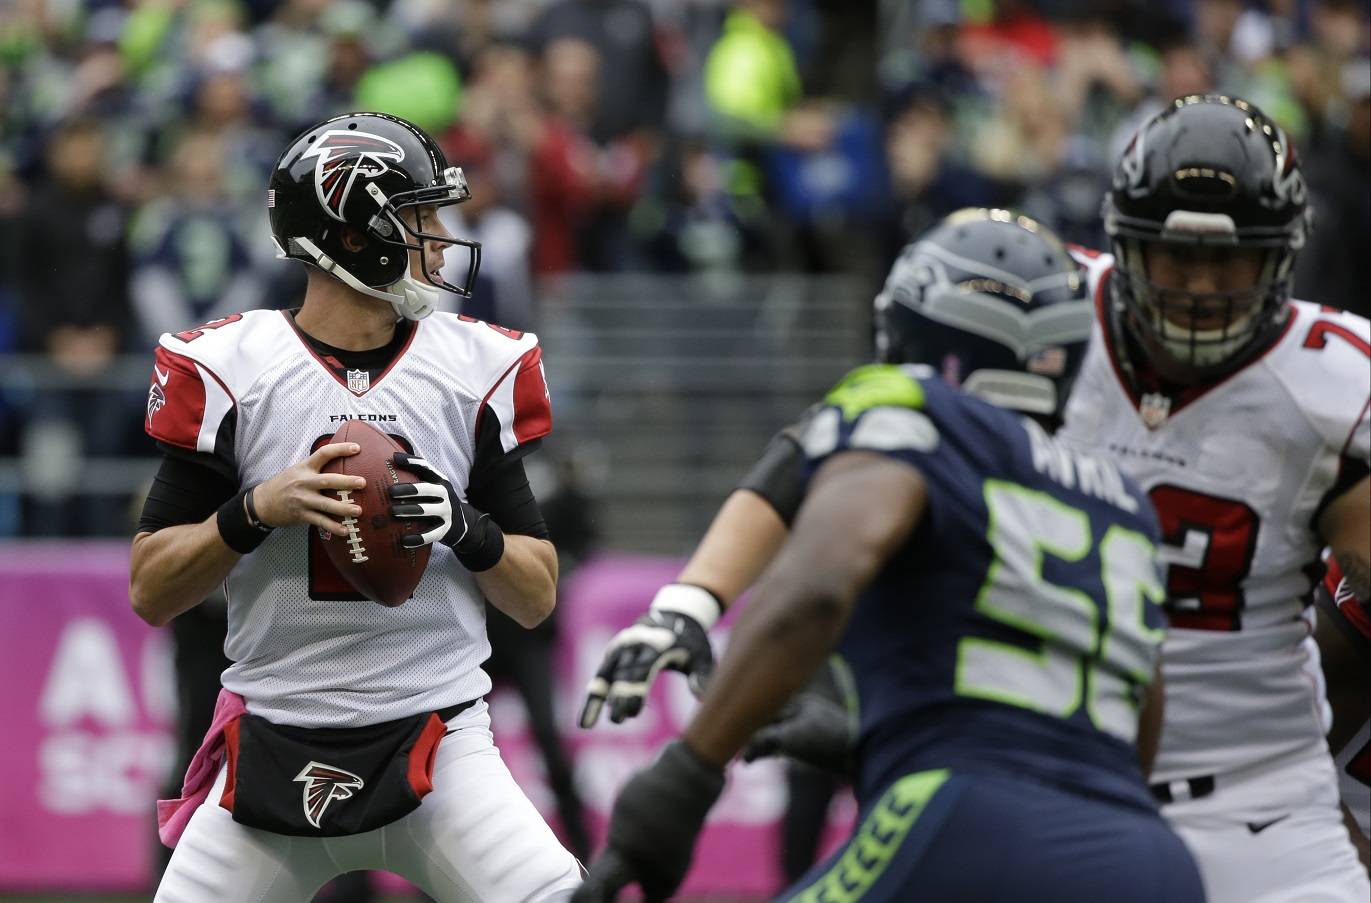 Atlanta Falcons quarterback Matt Ryan looks to pass against the Seattle Seahawks in the first half of an NFL football game, Sunday, Oct. 16, 2016, in Seattle. (AP Photo/Elaine Thompson)